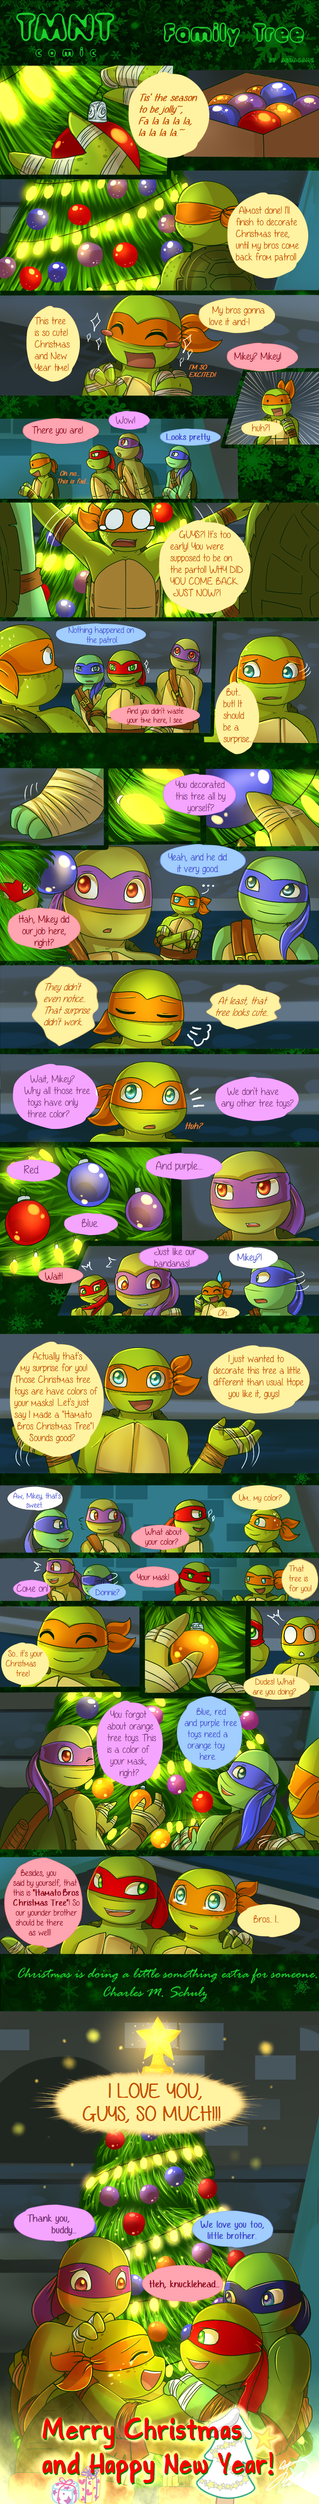 Teenage mutant ninja turtles favourites by ladycelestialstar on tmnt comic family tree by aquagd sciox Image collections